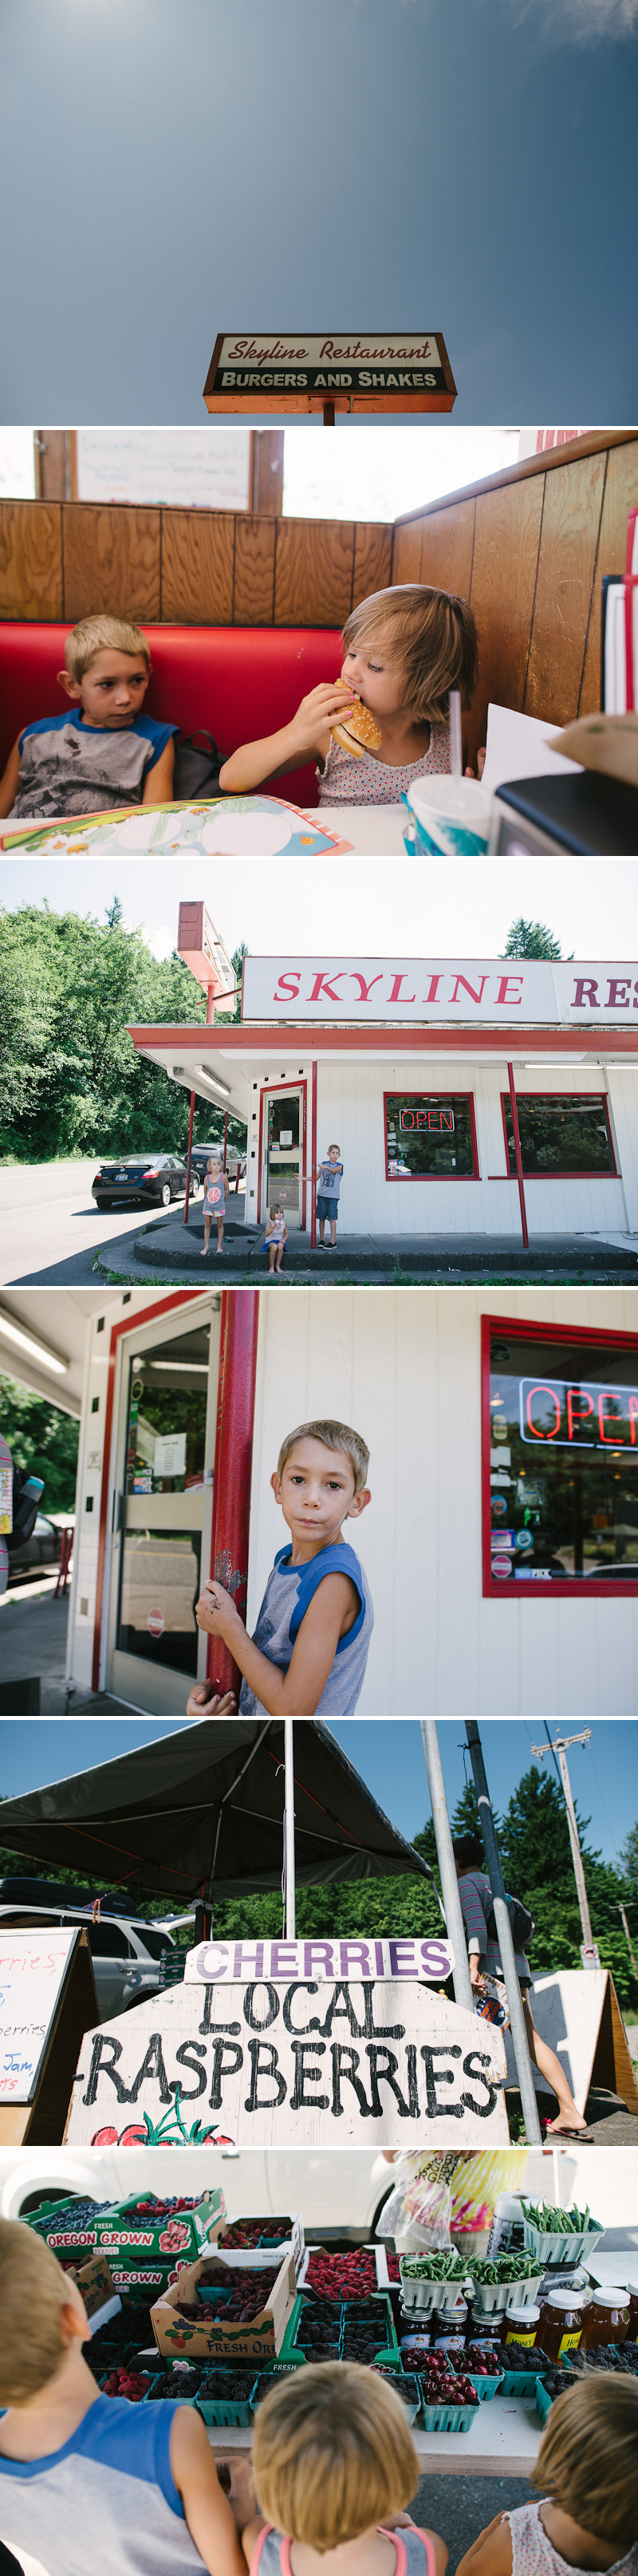 awesome food at the skyline restaurant in portland